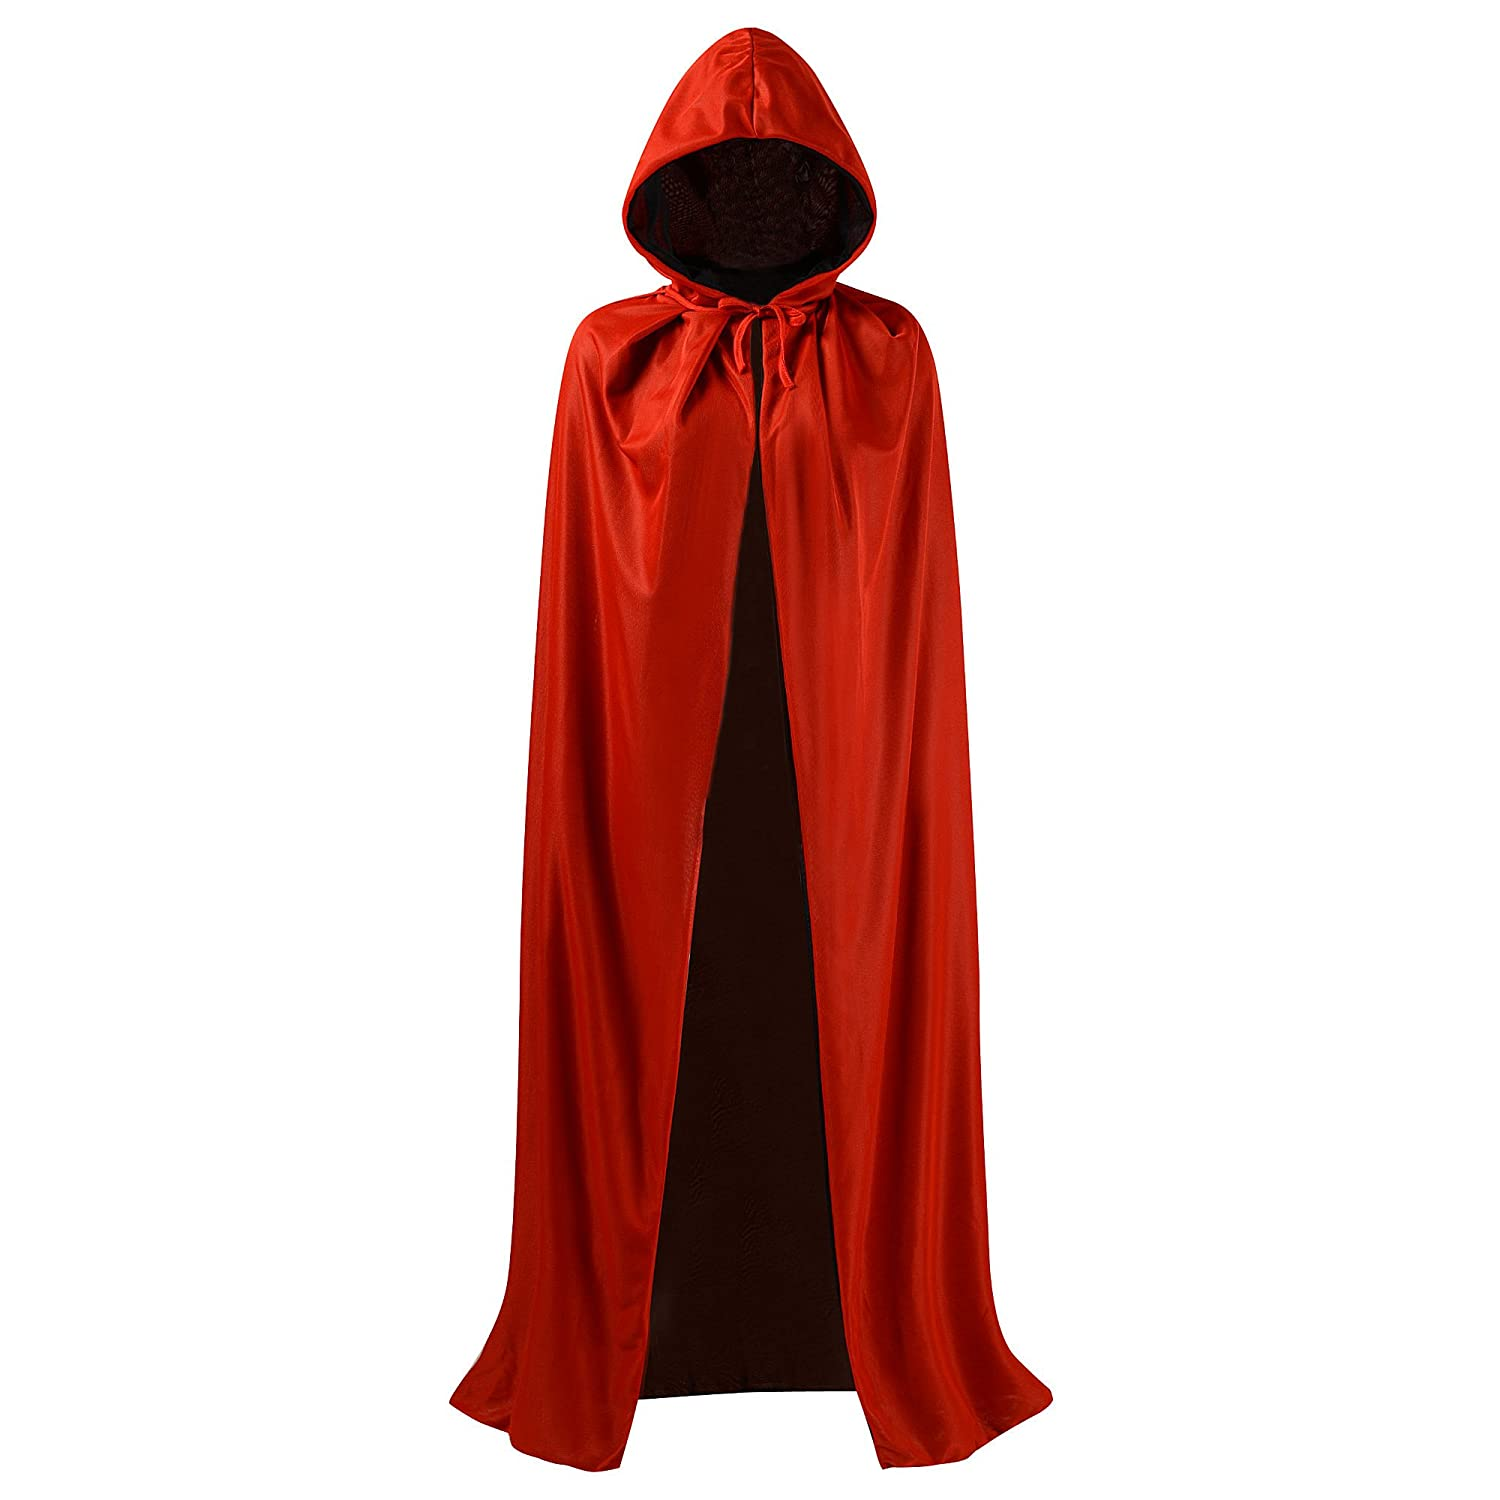 Black and Red Reversible Cloak Masquerade Party Cape Costume